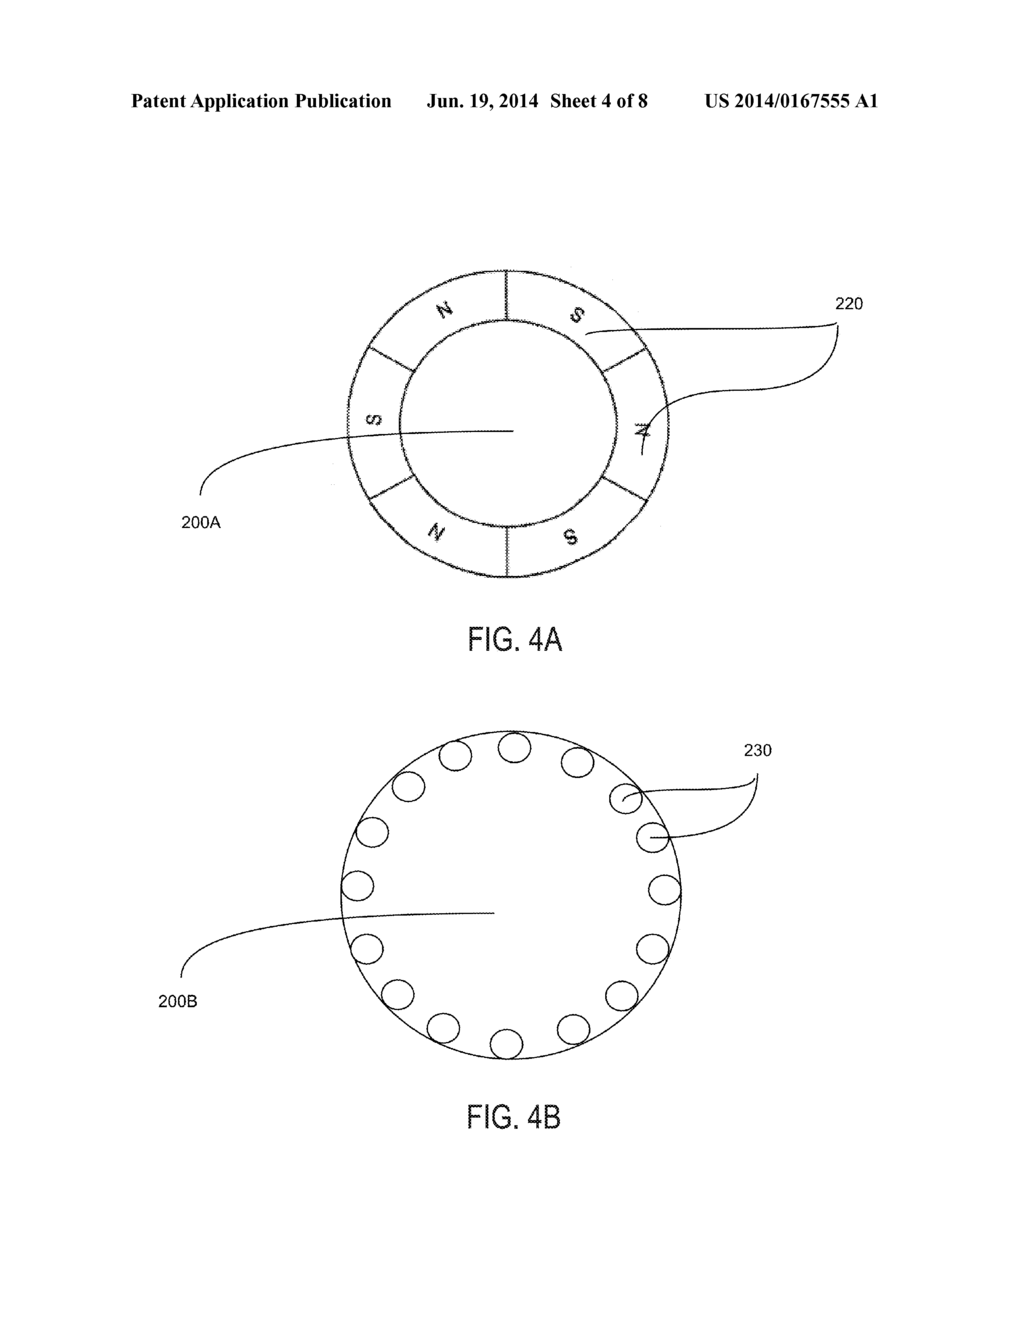 Carbon Fiber Stator And Rotor For An Electric Motor Diagram 220 Schematic Image 05